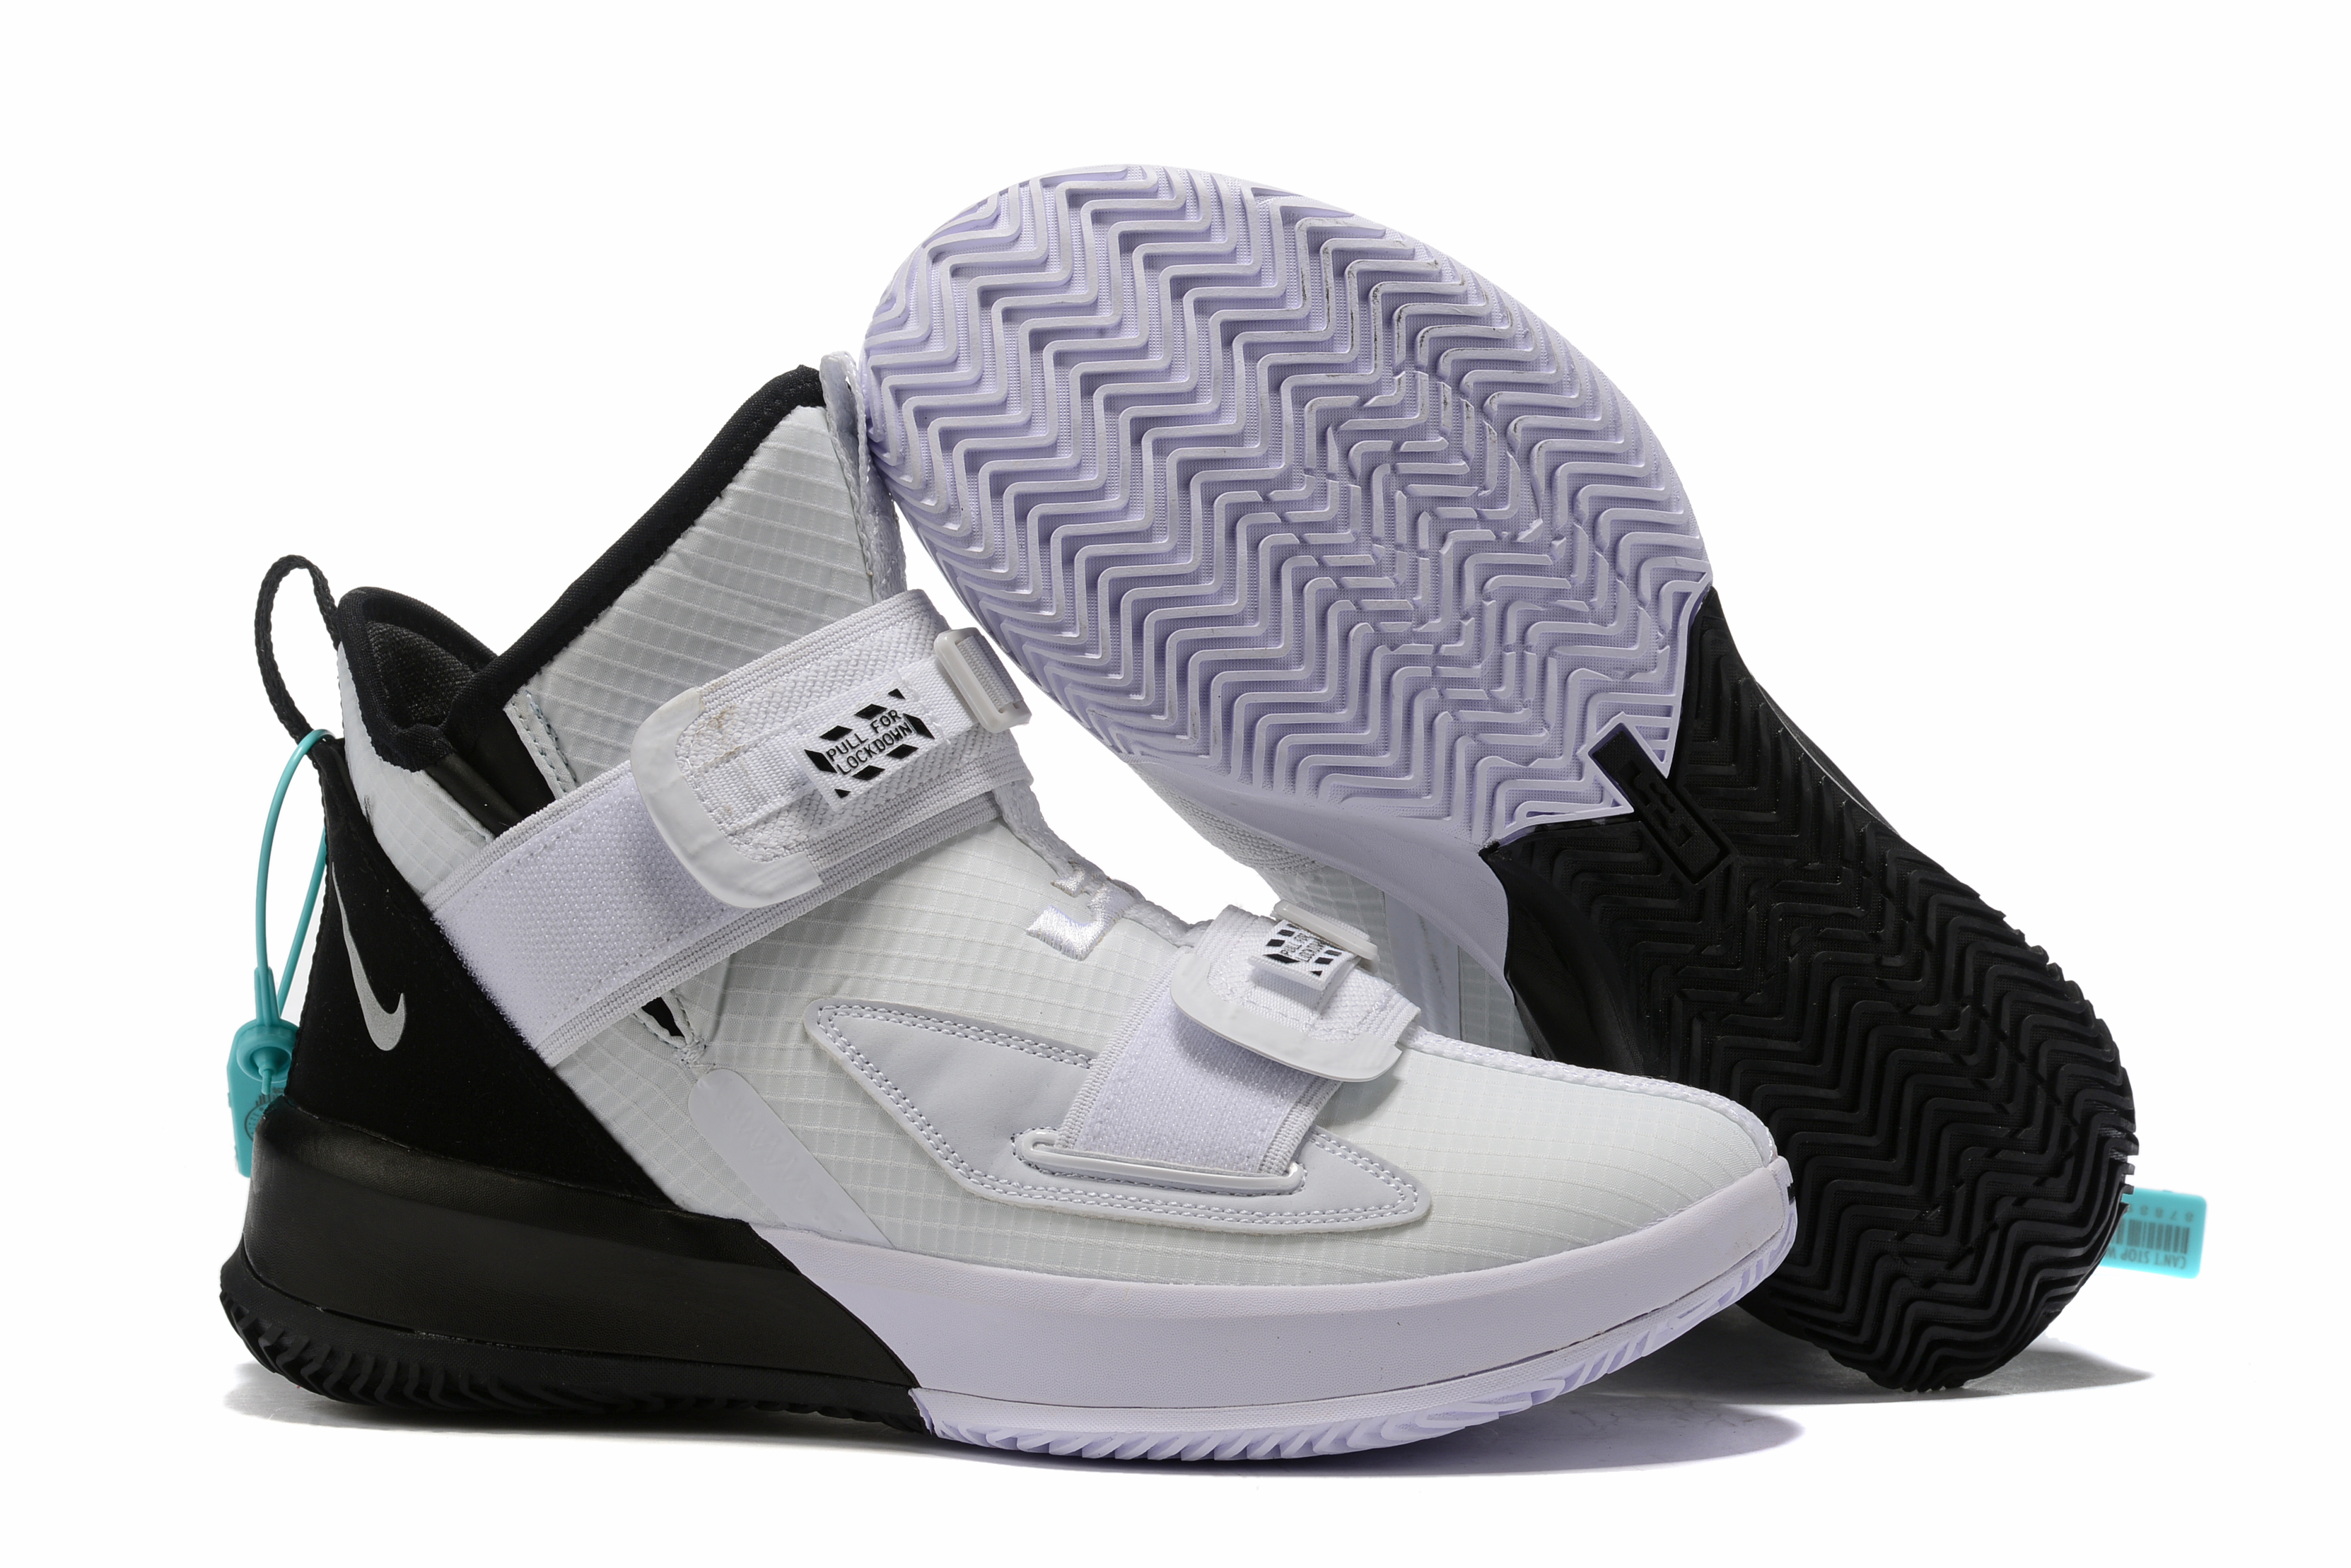 Nike Lebron Solider 13 White Black Shoes